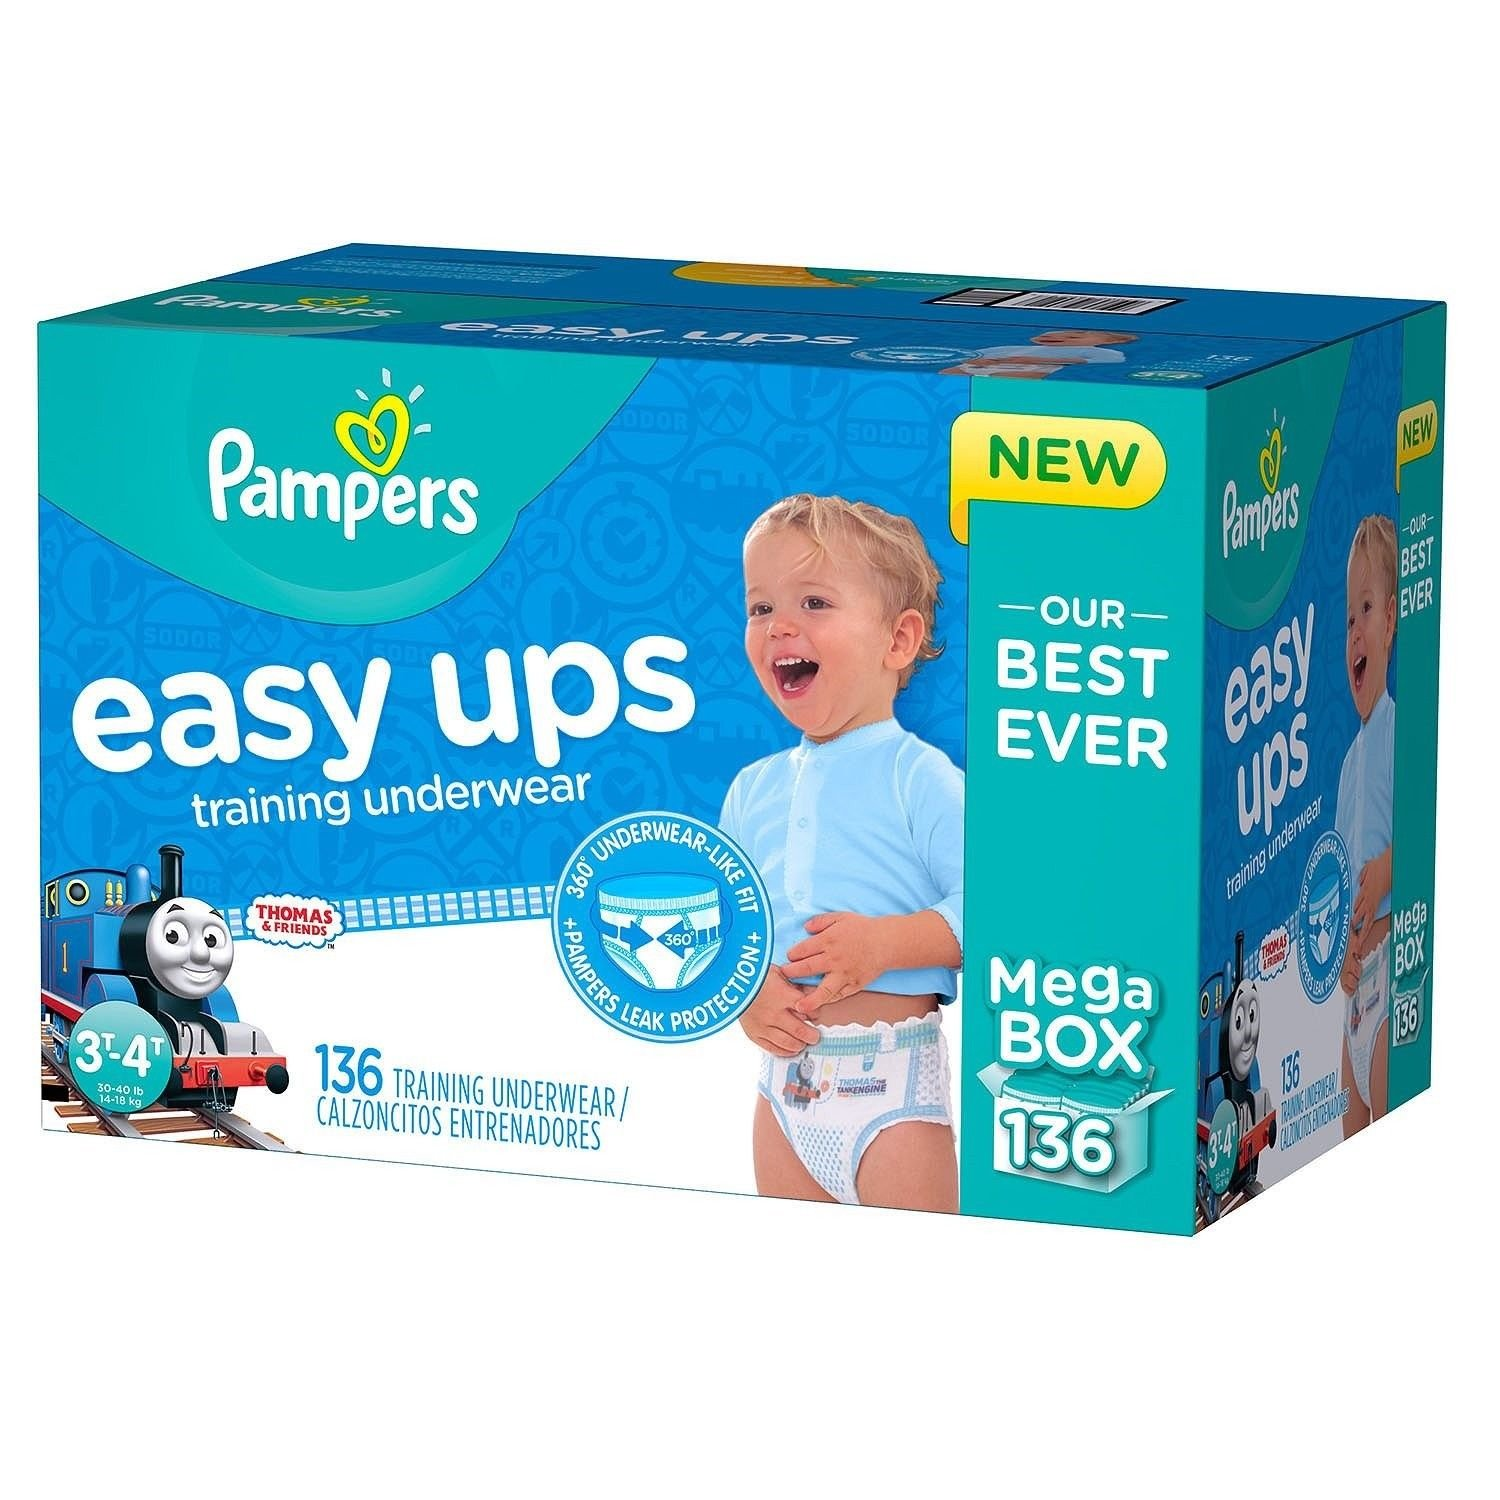 Pampers Easy Ups Thomas the Tank Engine Train Training Underwear for Boys, 3T-4T, 136-Pack